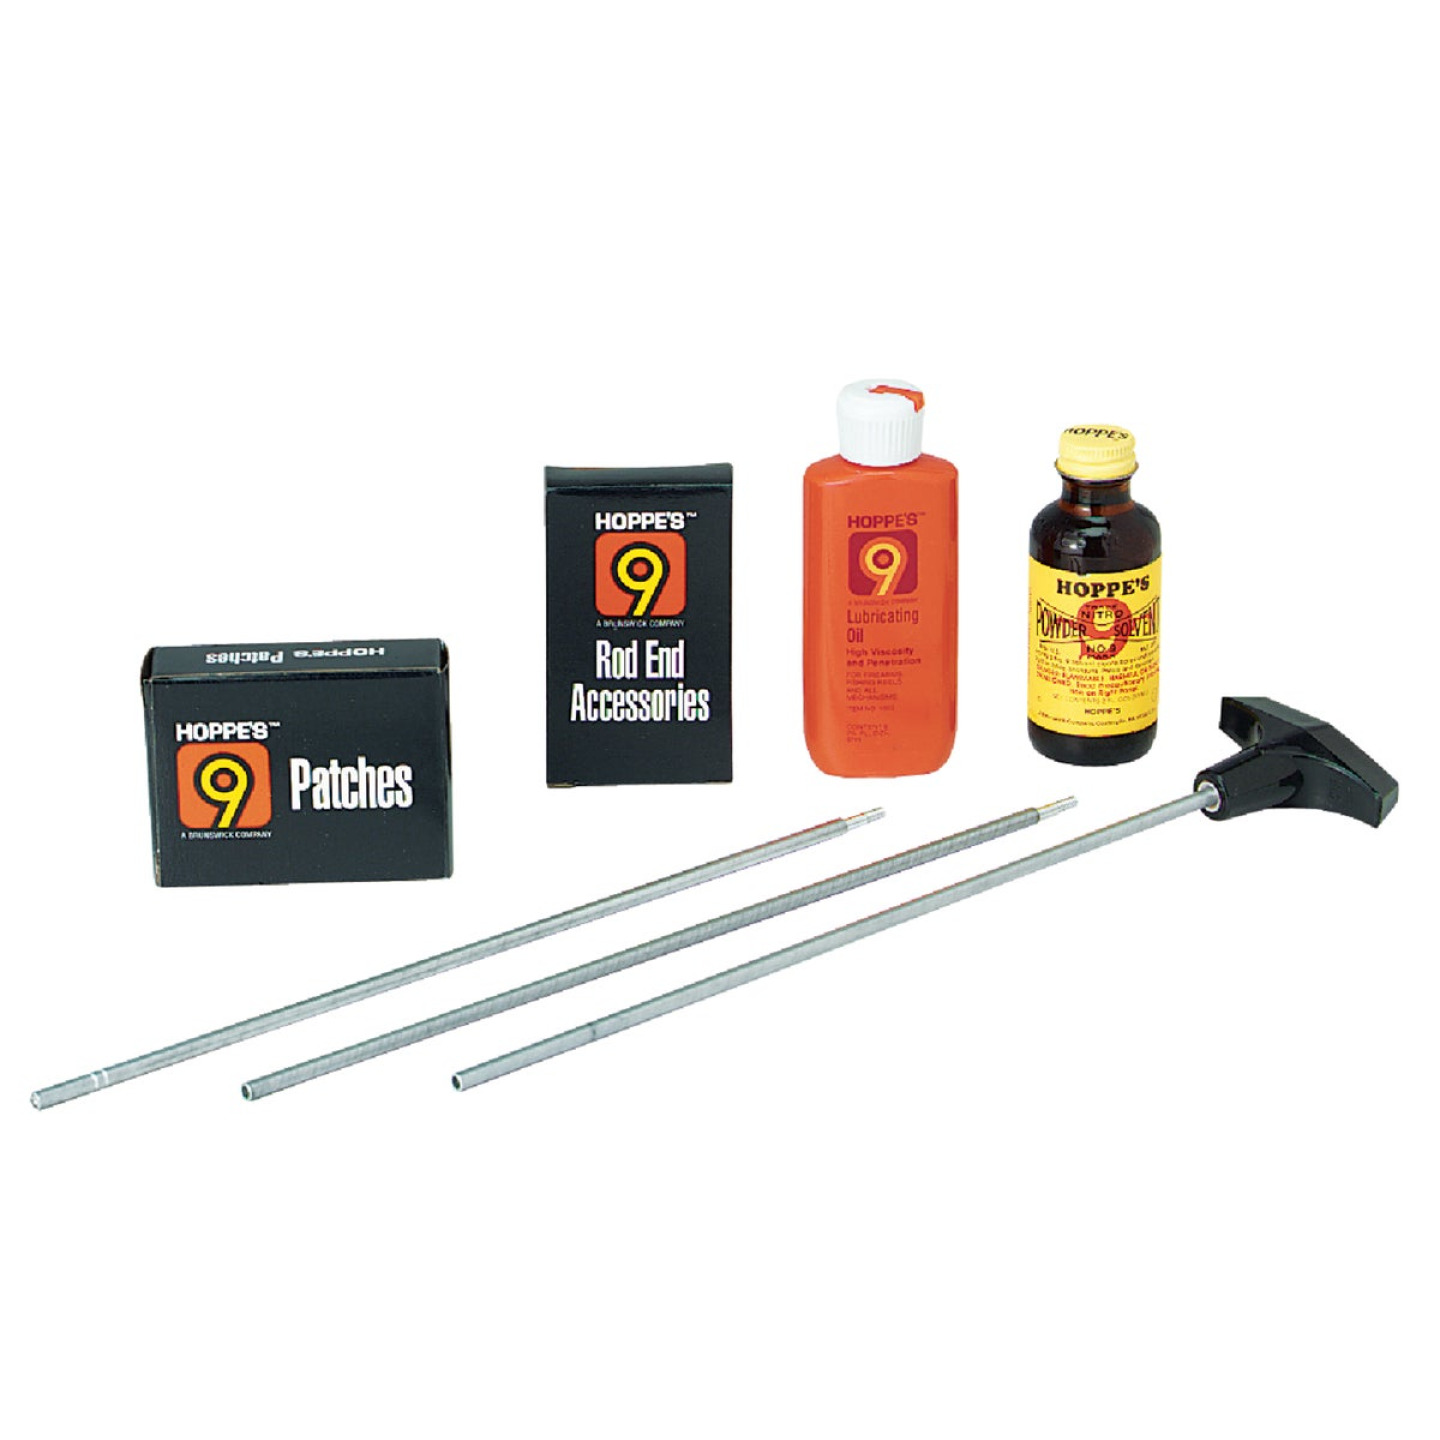 Hoppes Universal Rifle or Shotgun Cleaning Kit Image 1